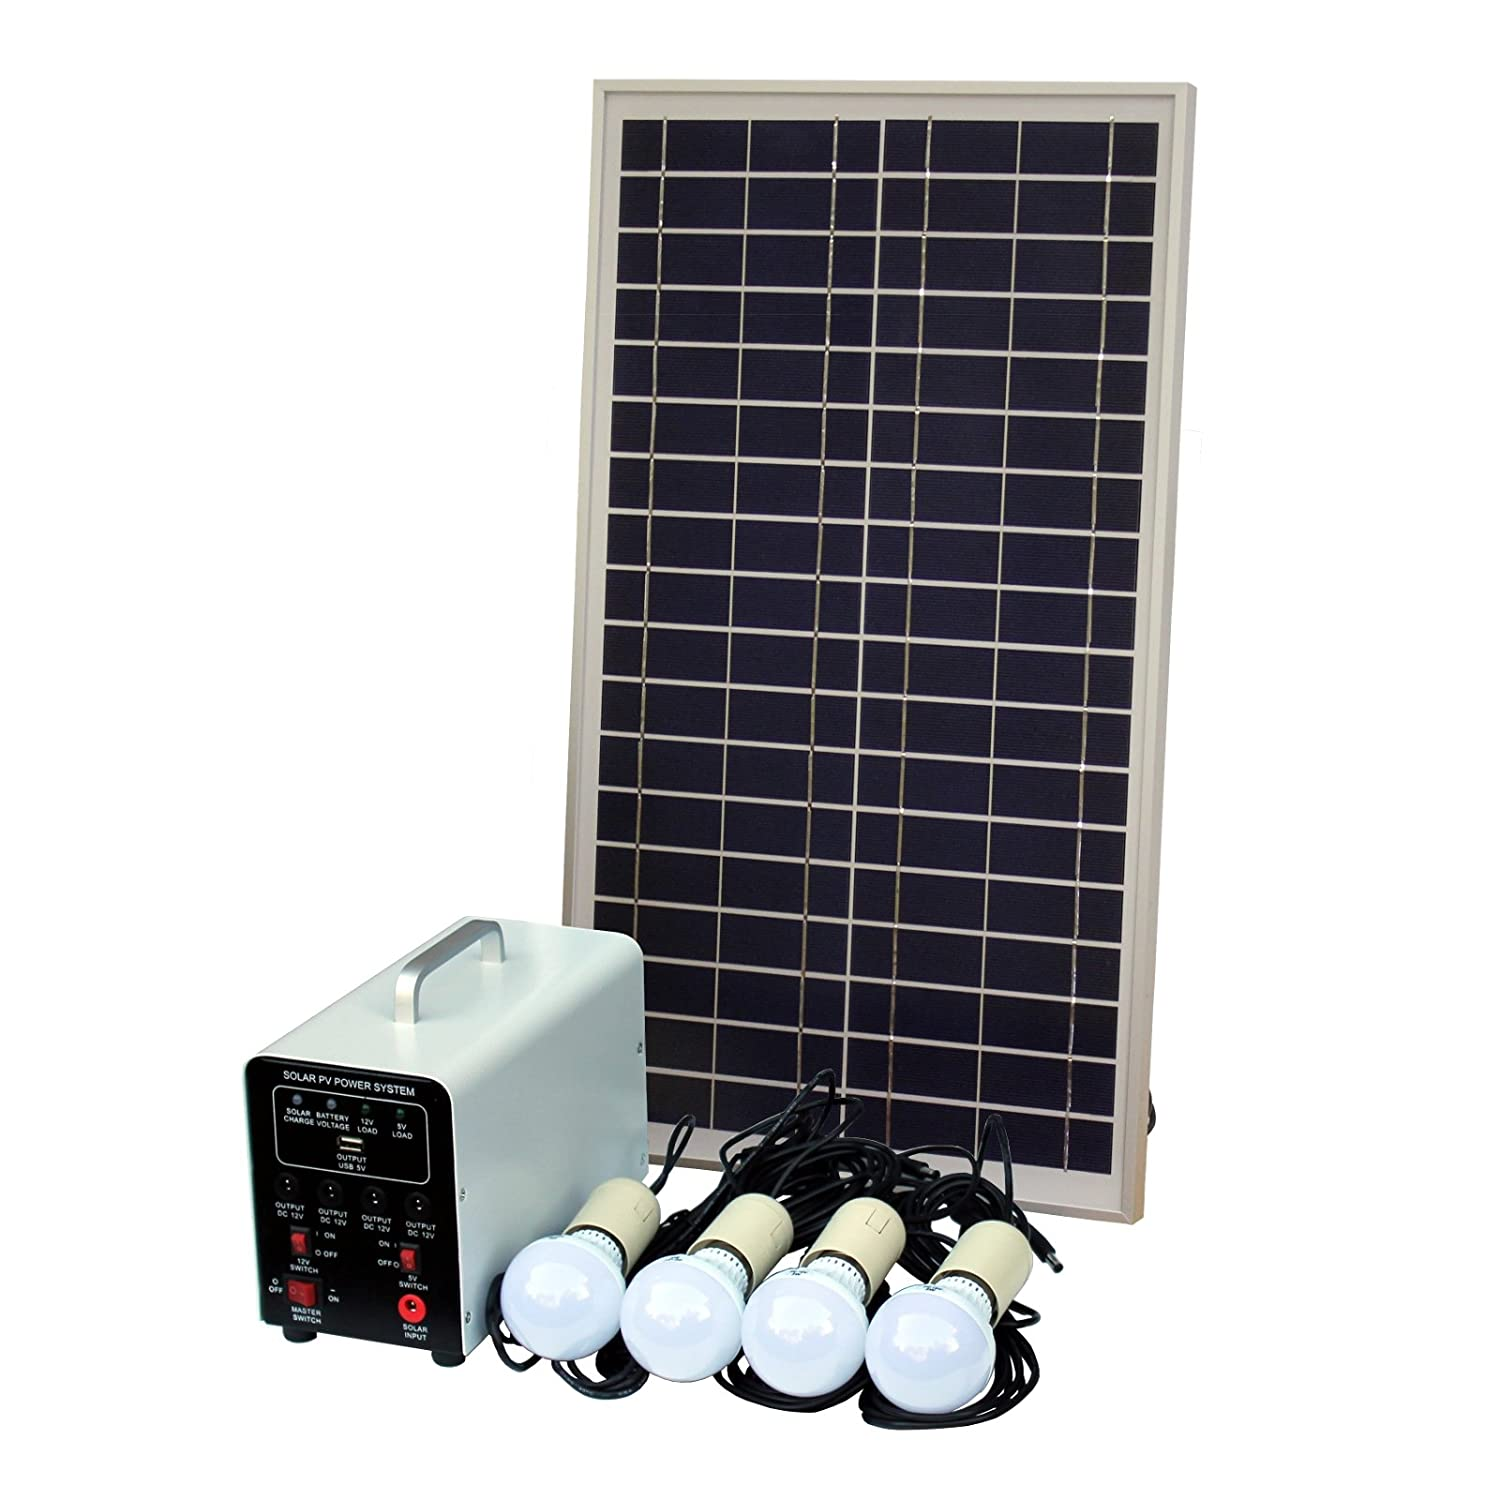 Awesome Solar System Lighting Part - 5: 25W Off-Grid Solar Lighting System With 4 X 5W LED: Amazon.co.uk:  Electronics